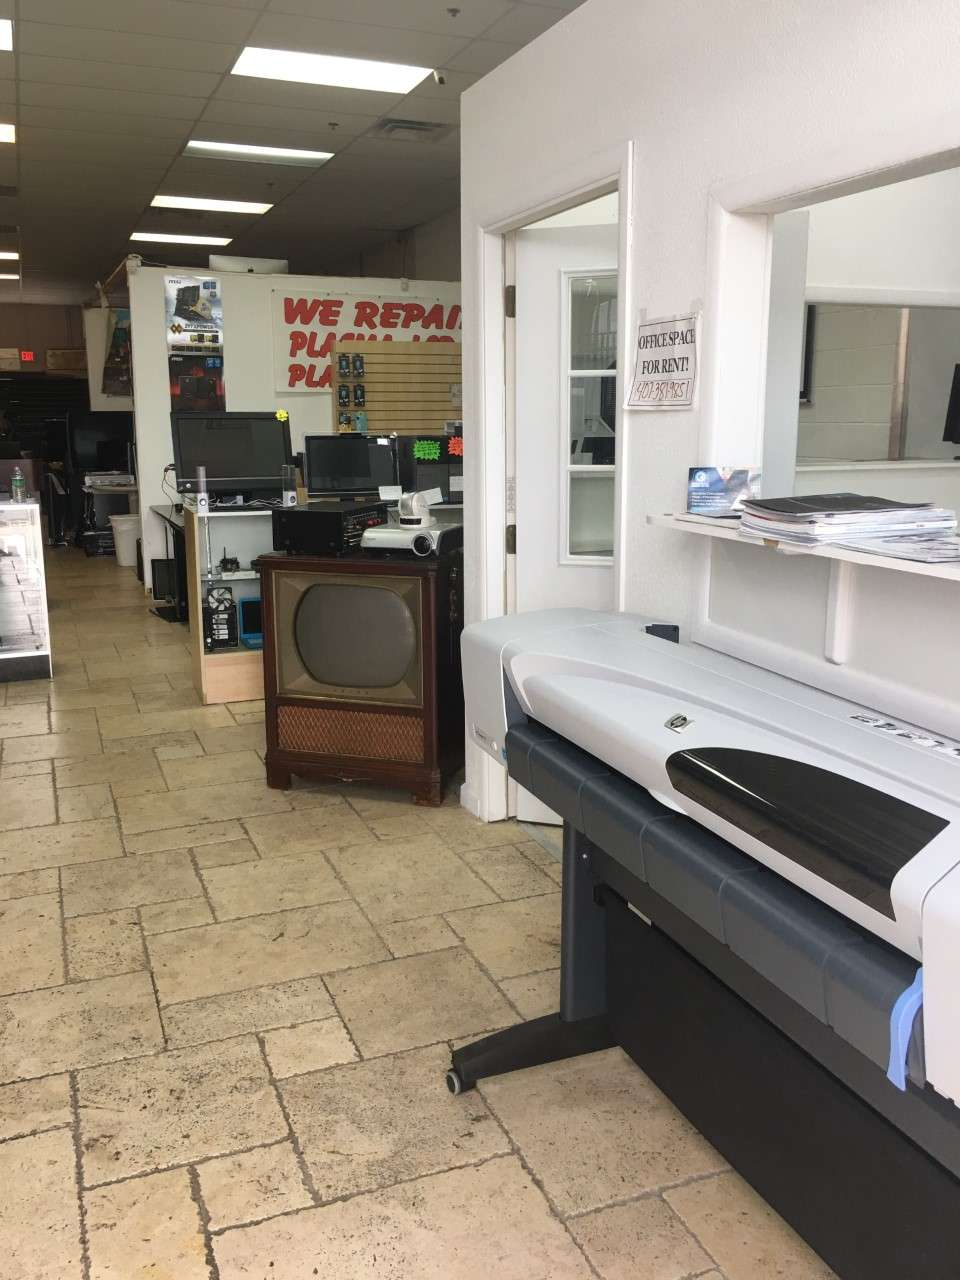 PC & TV Repairs - home goods store  | Photo 6 of 10 | Address: 7101 E Colonial Dr suite131, Orlando, FL 32807, USA | Phone: (407) 381-9851